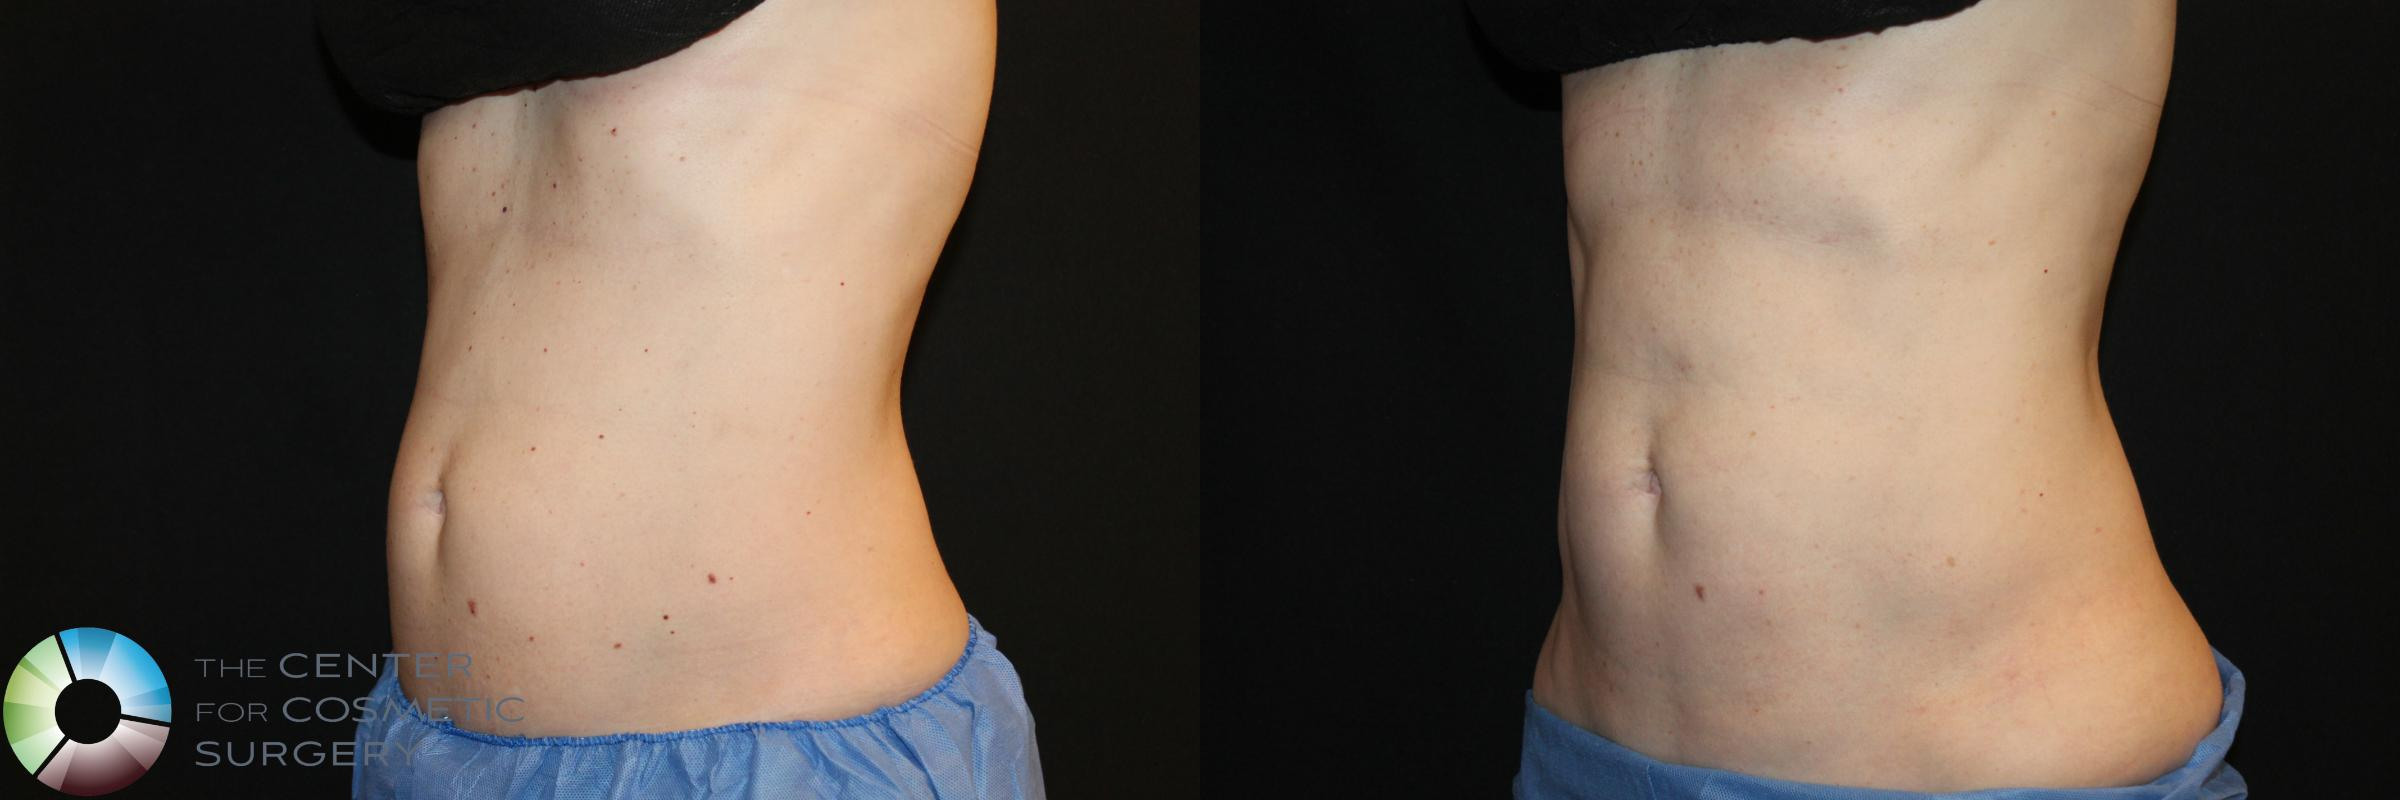 CoolSculpting Case 752 Before & After View #1 | Golden, CO | The Center for Cosmetic Surgery